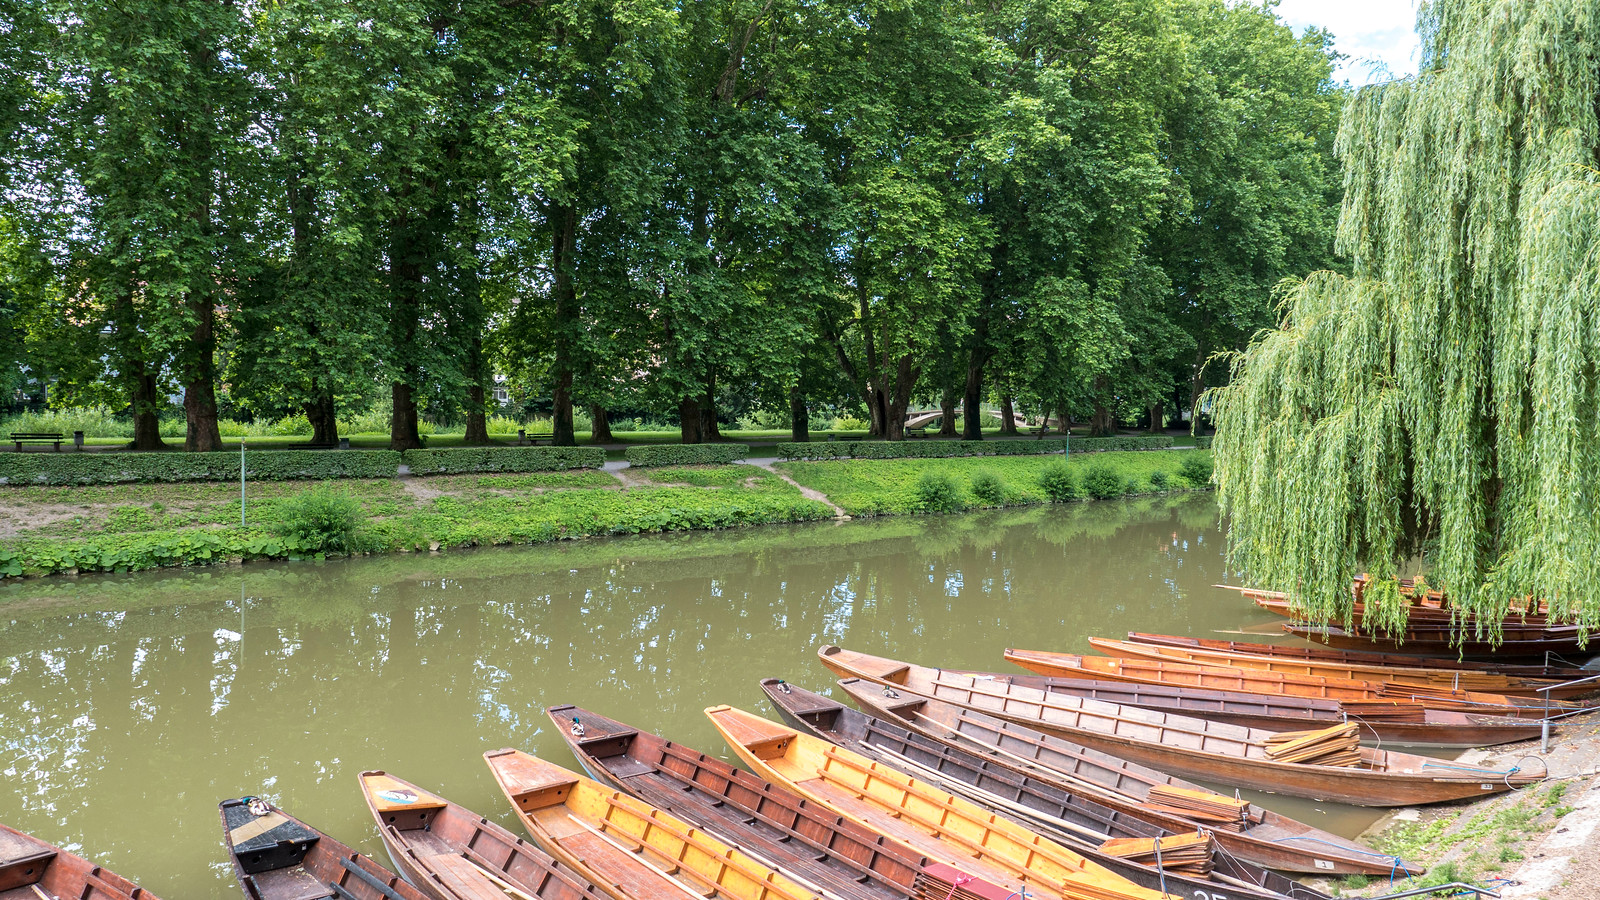 Punting boats in Tubingen. Things to do in Tubingen Germany.